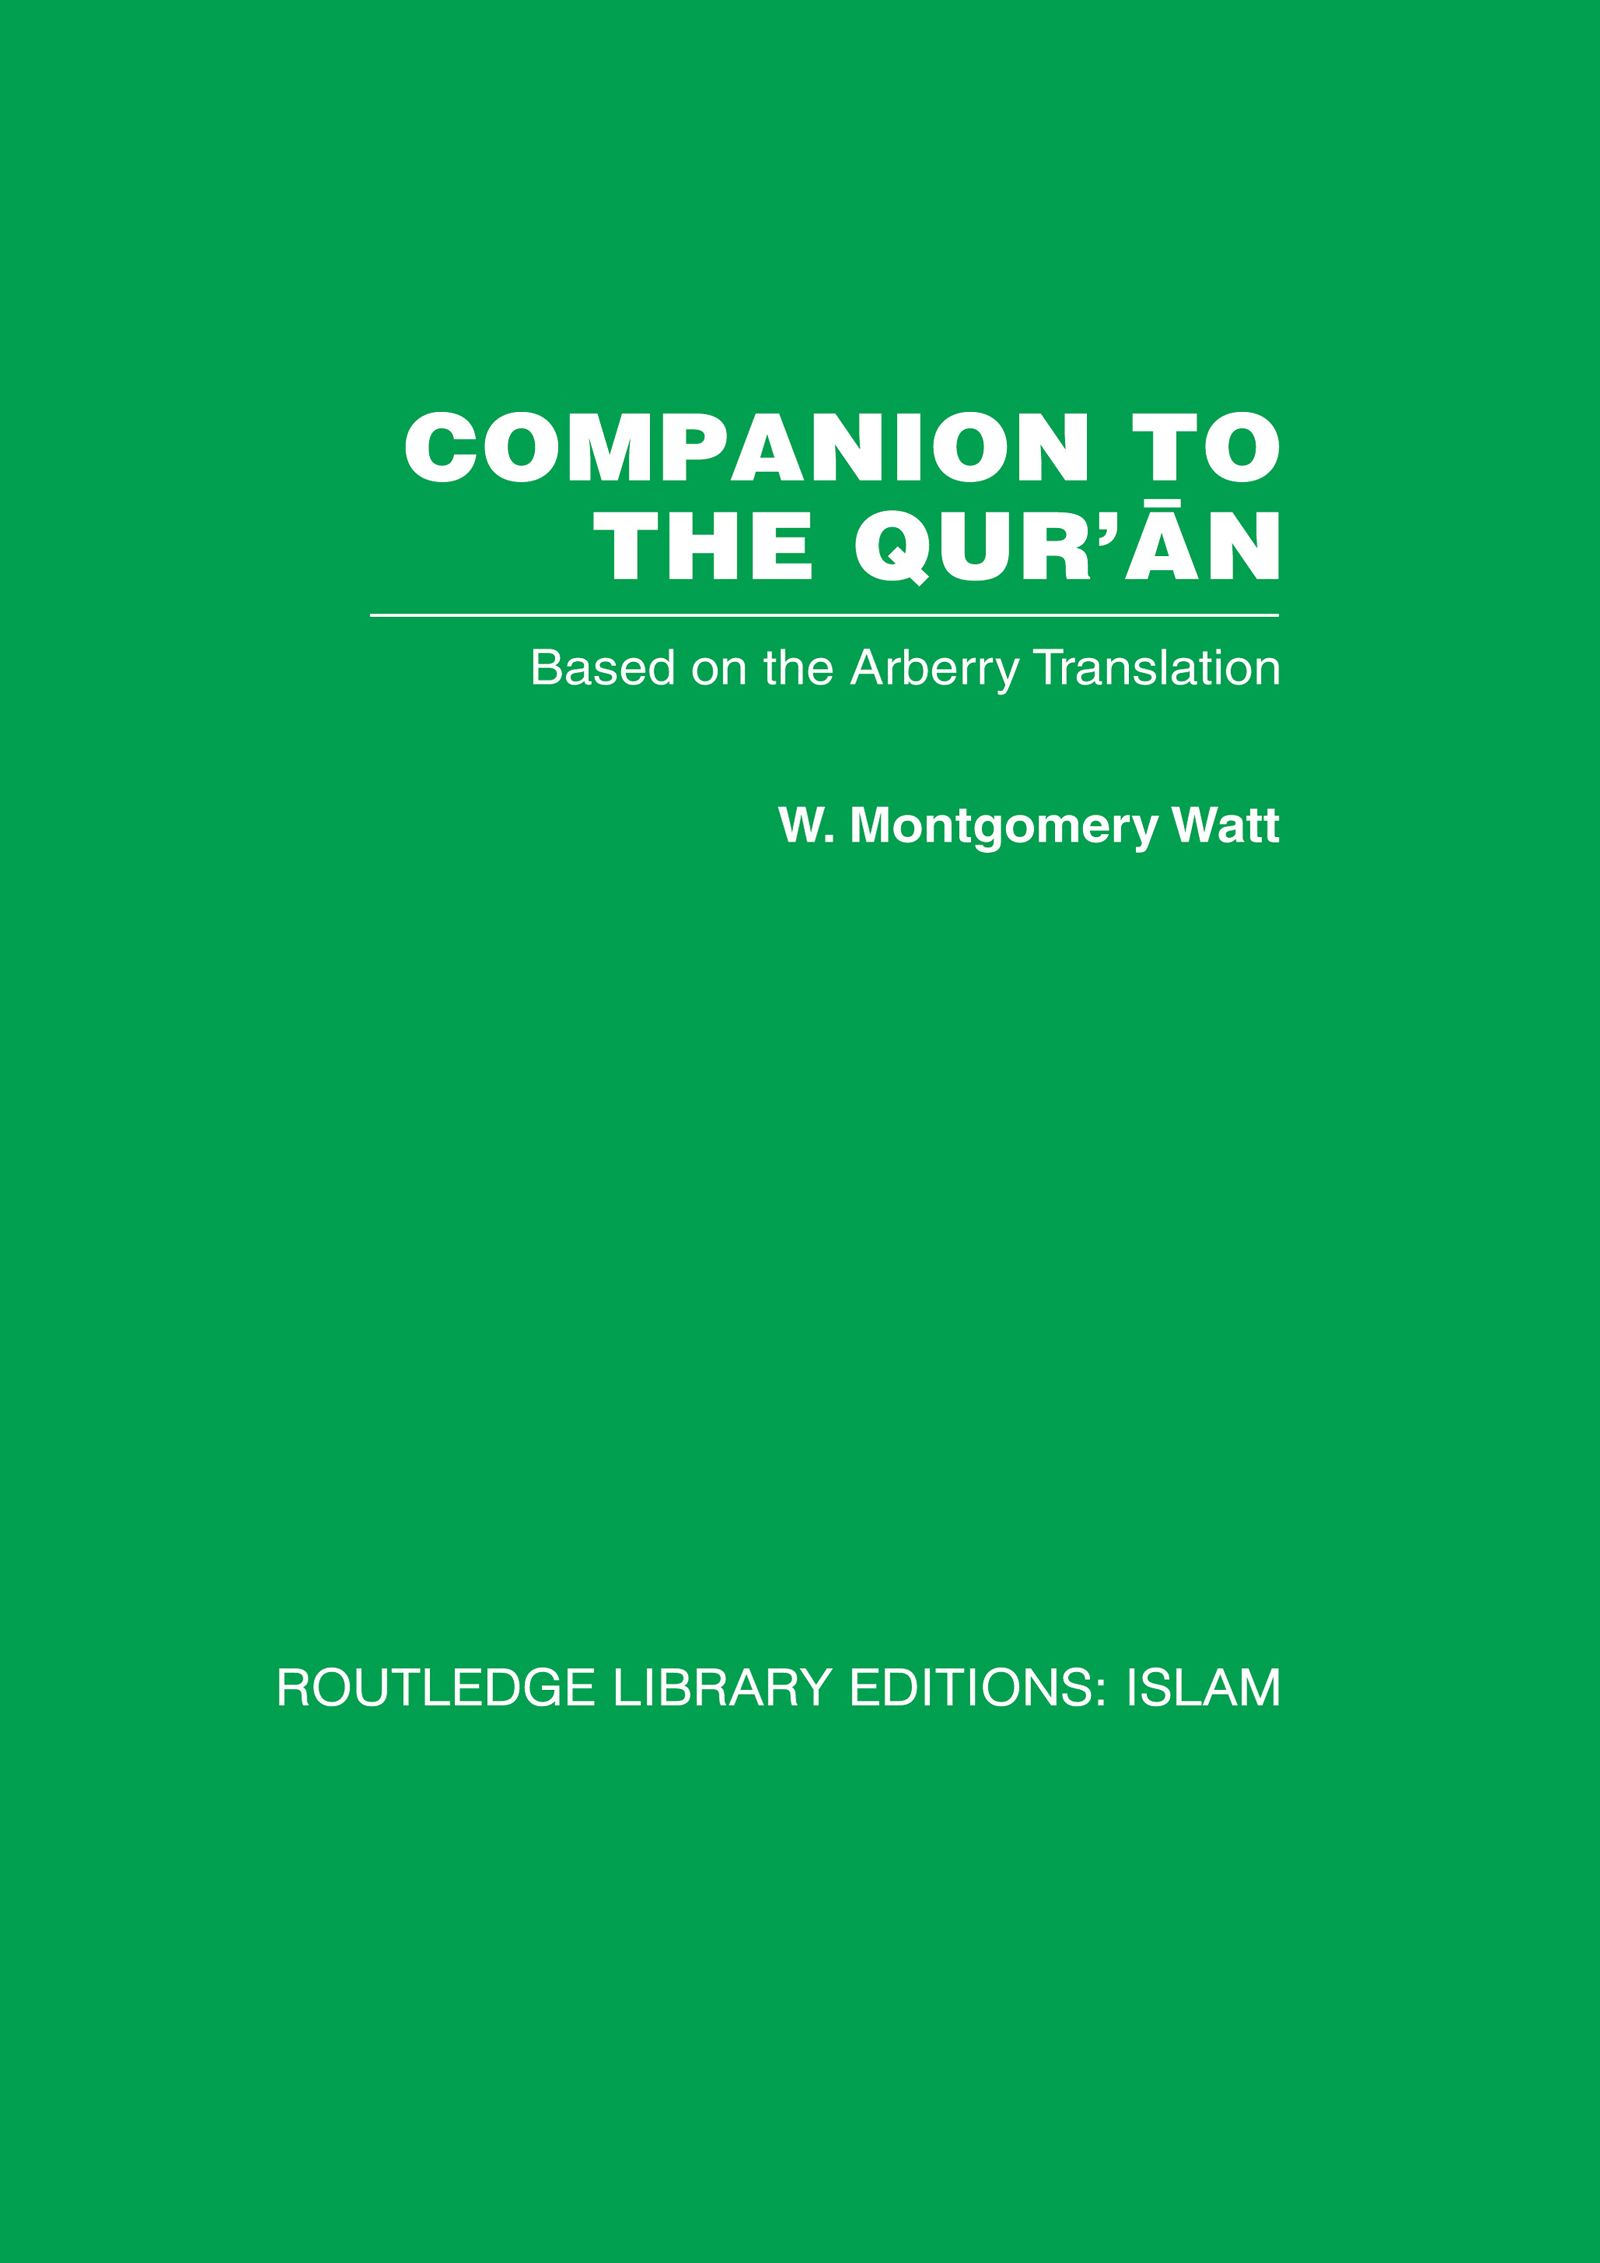 Companion to the Qur'an